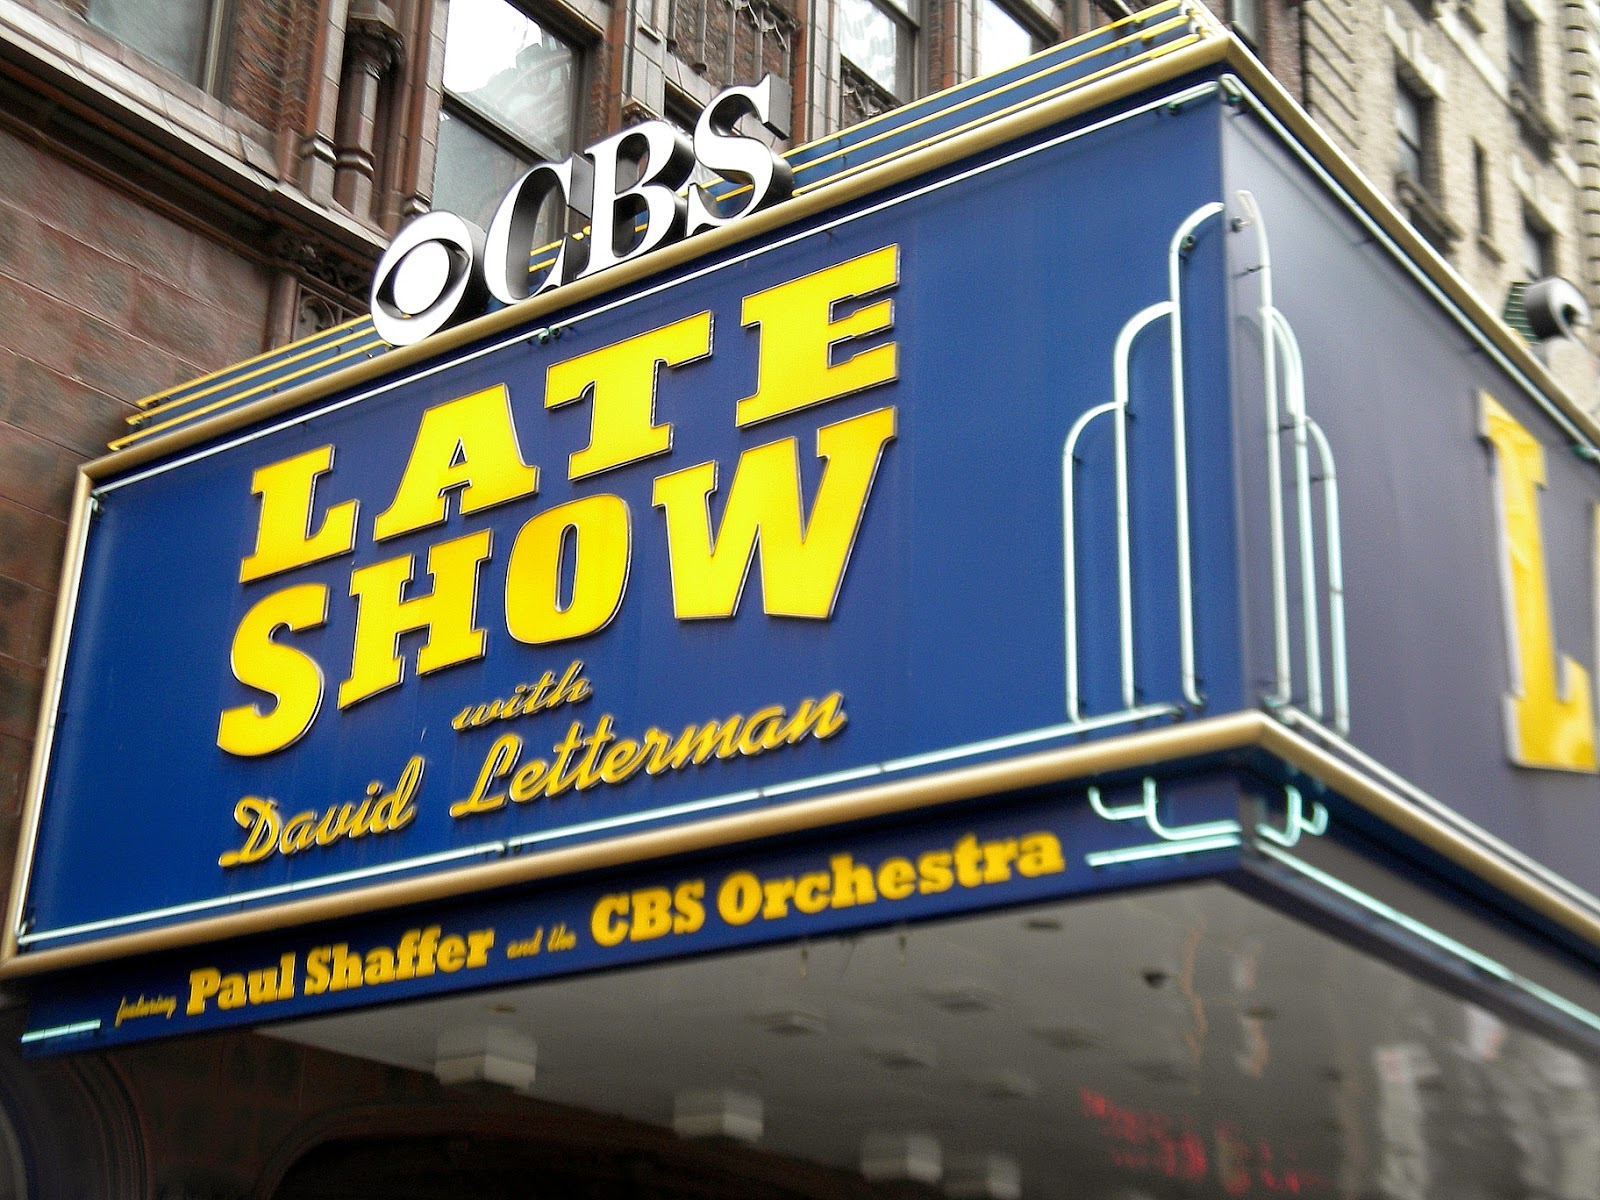 Late Night David Letterman Ed Sullivan Theater Clip Art Public.